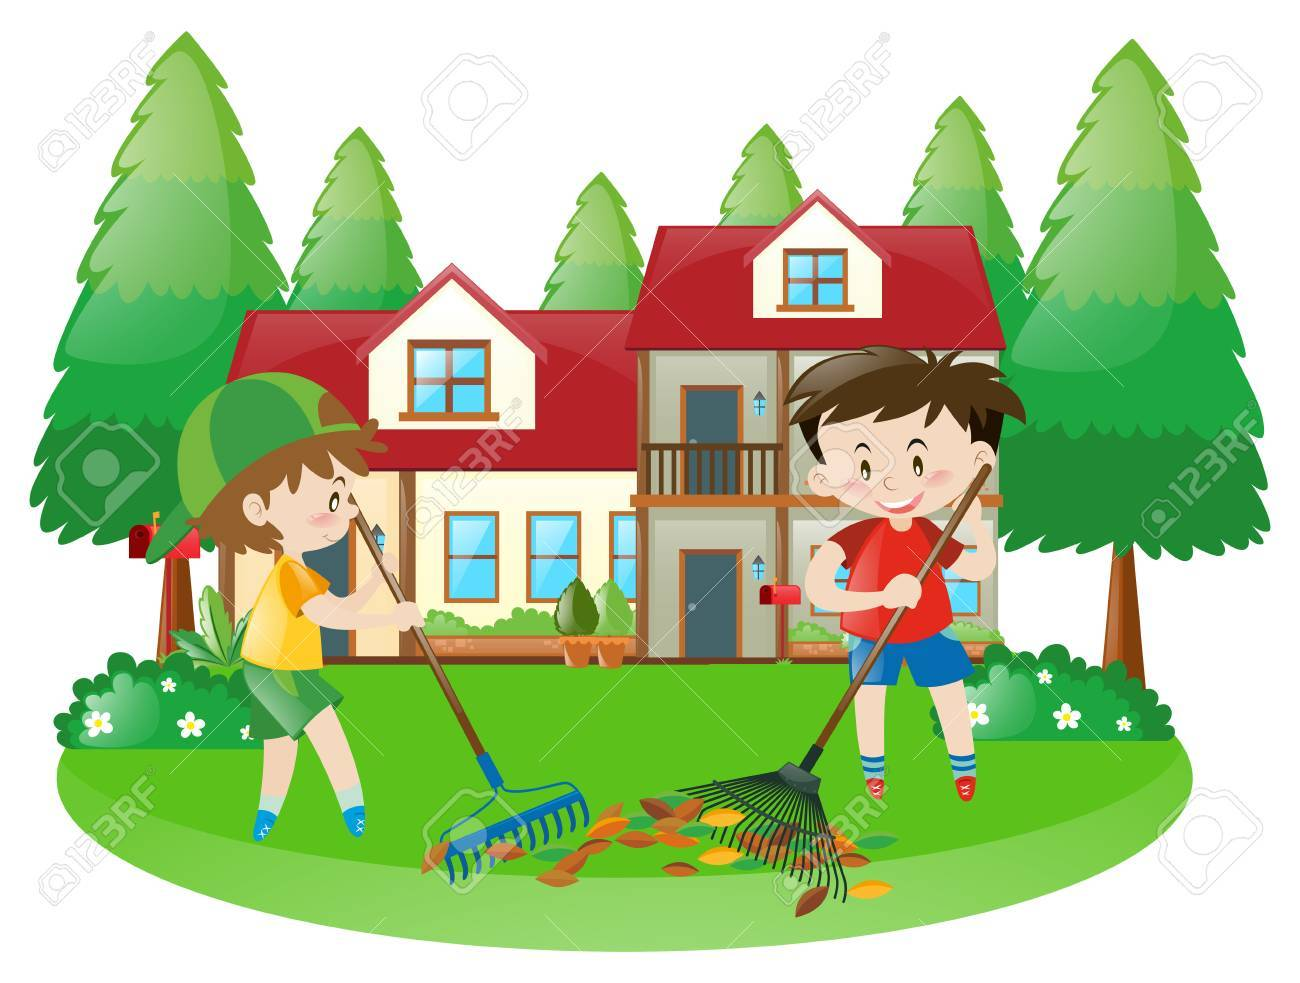 Scene With Two Boys Raking Dried Leaves Illustration Royalty Free